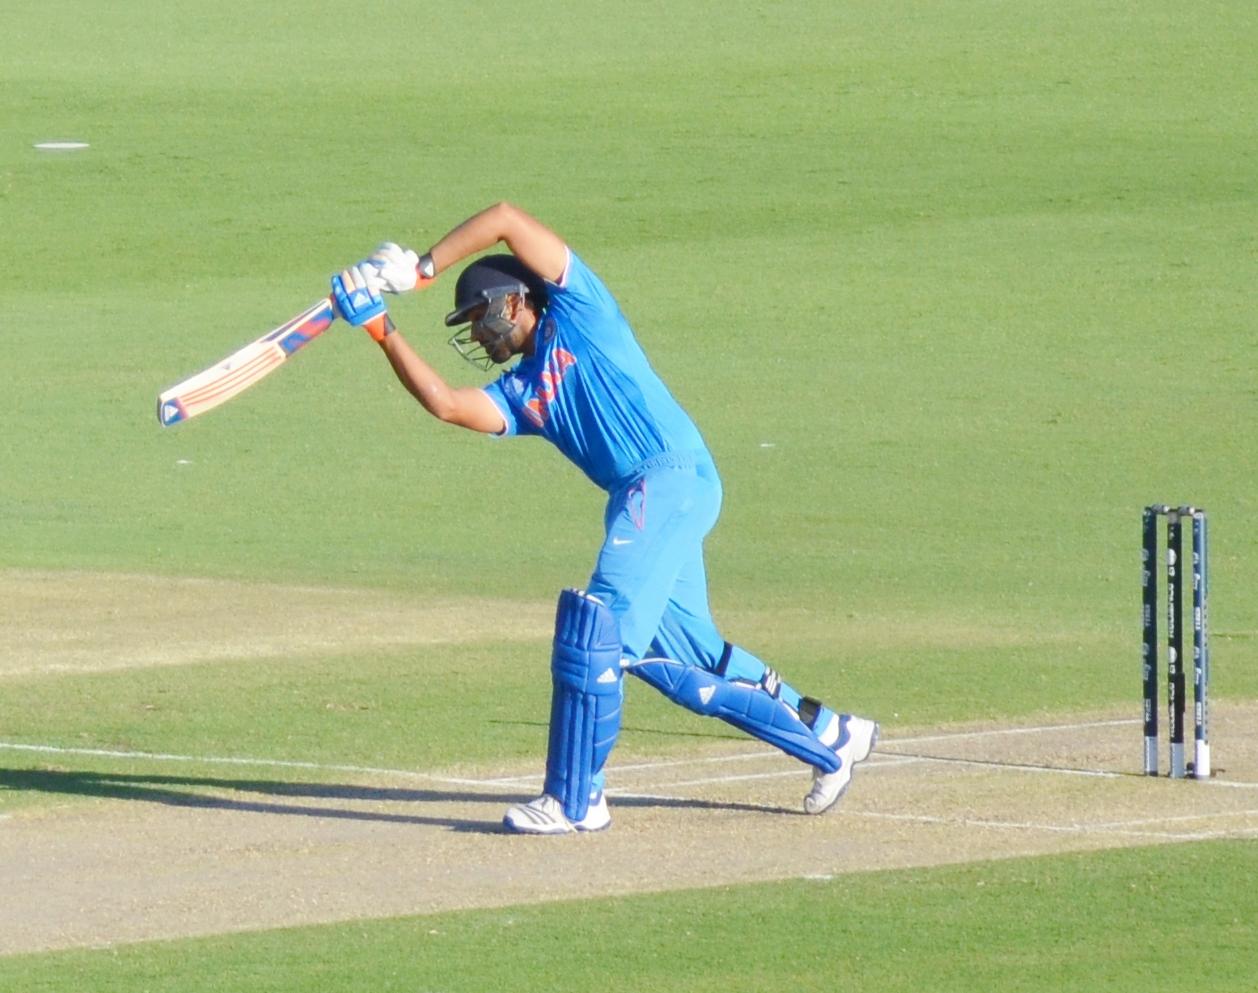 Rohit Sharma might be recalled for Australia Tests